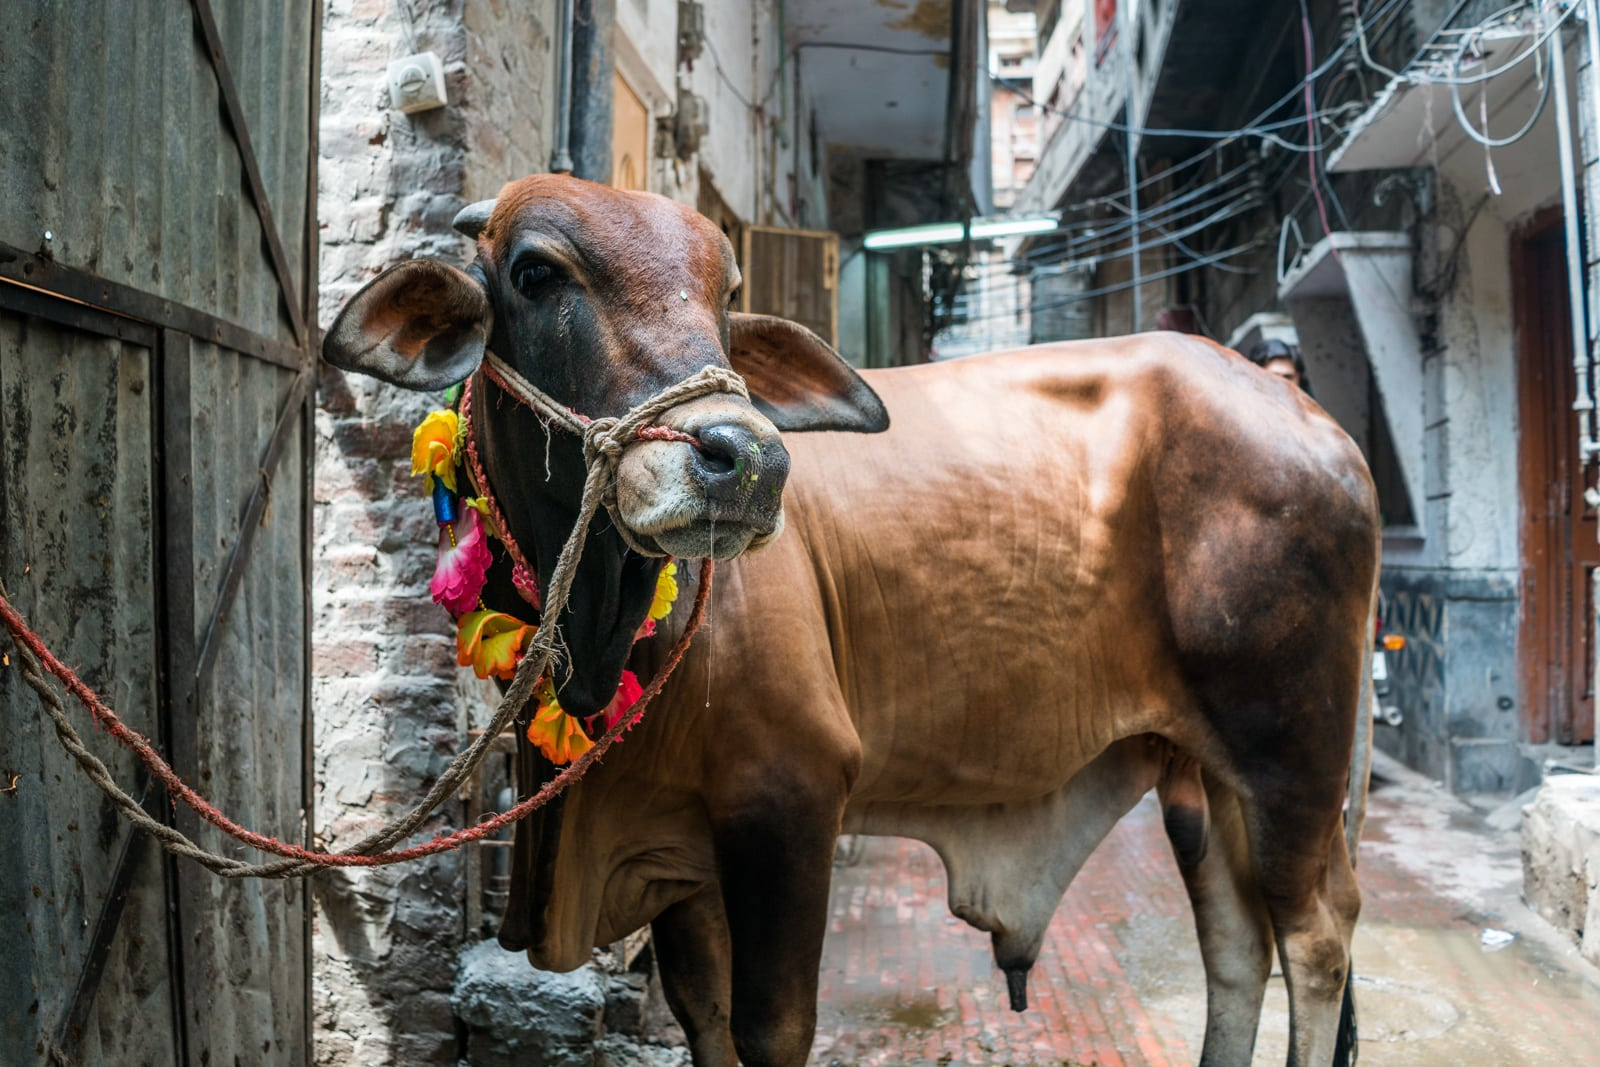 Celebrating Eid al-Adha in Lahore, Pakistan - A cow tied up on the streets - Lost With Purpose travel blog